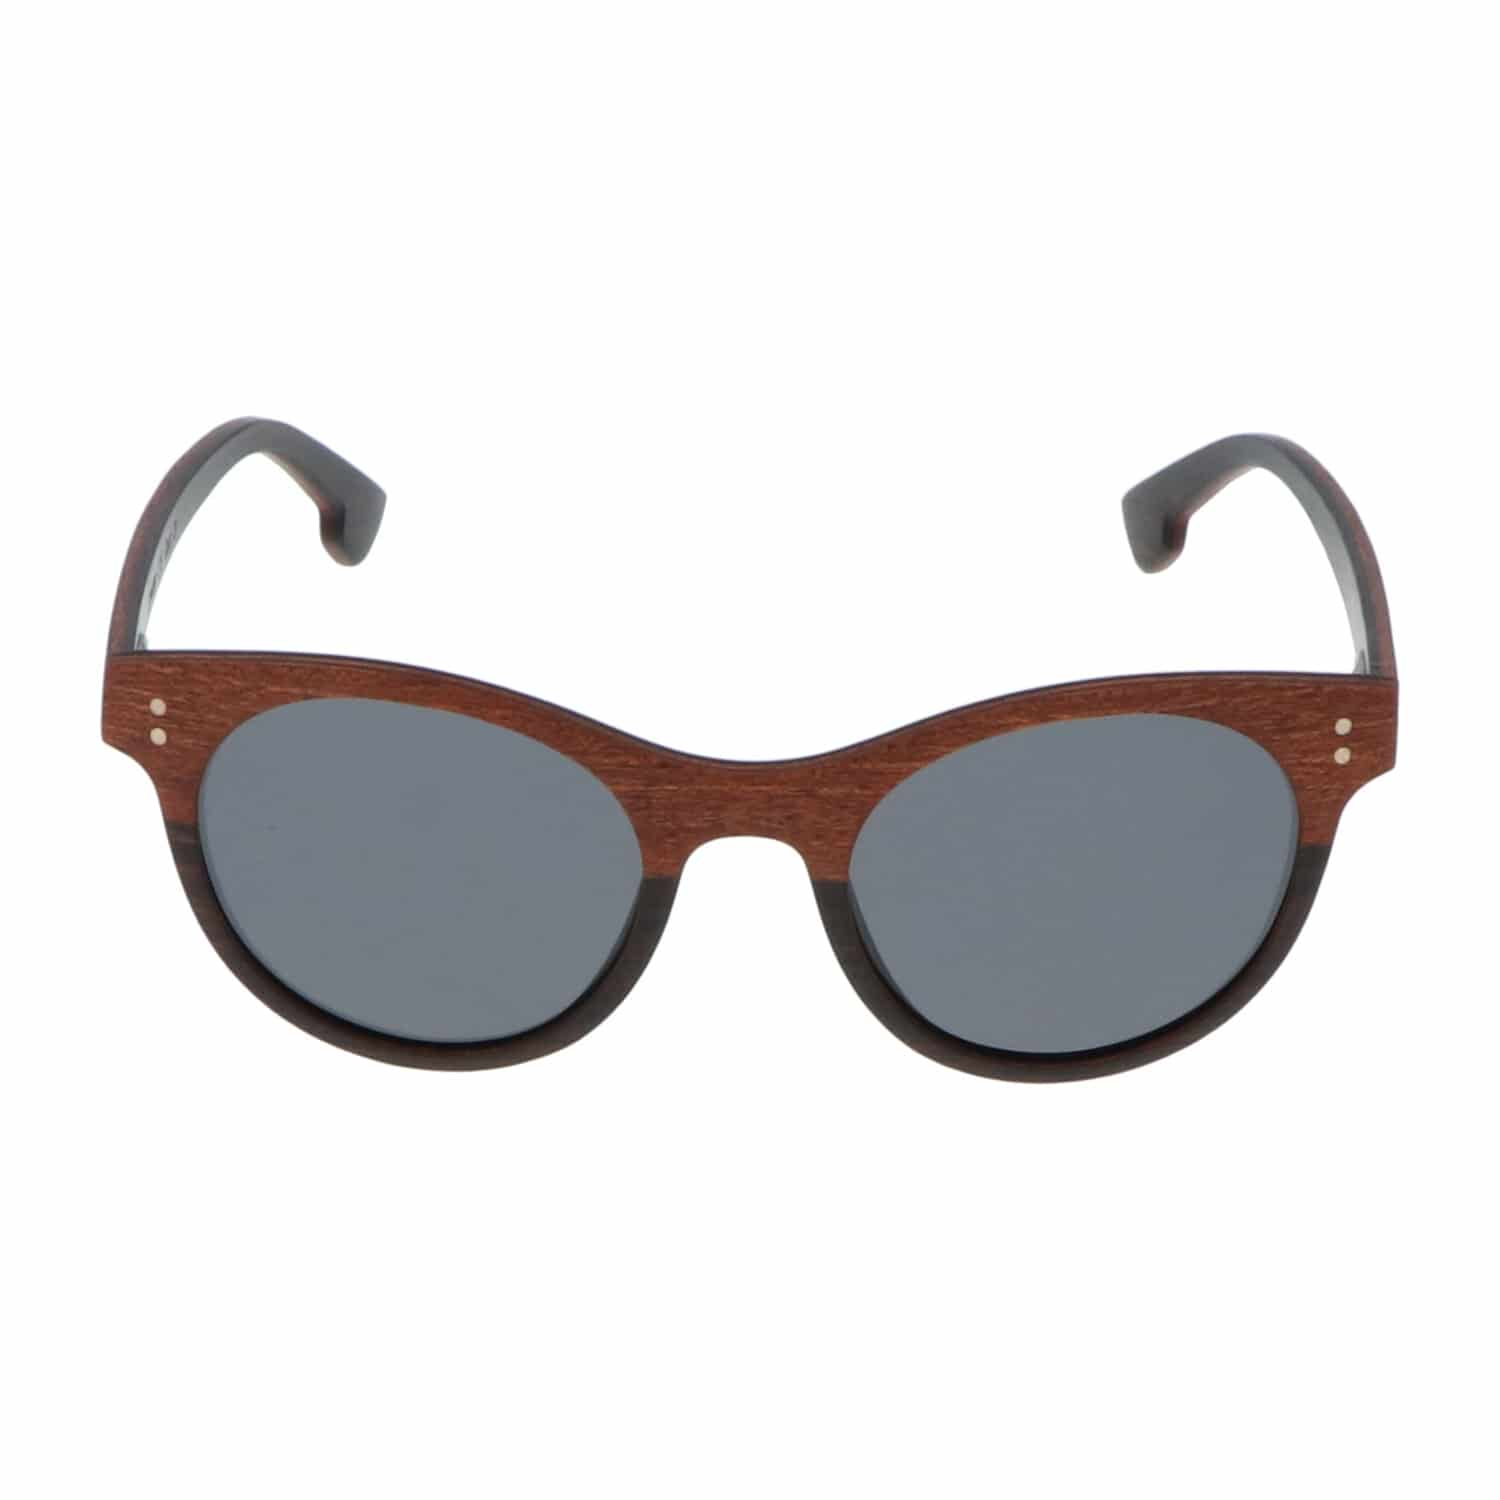 5one® Florence - Sapele hout zonnebril model Butterfly round - grijs